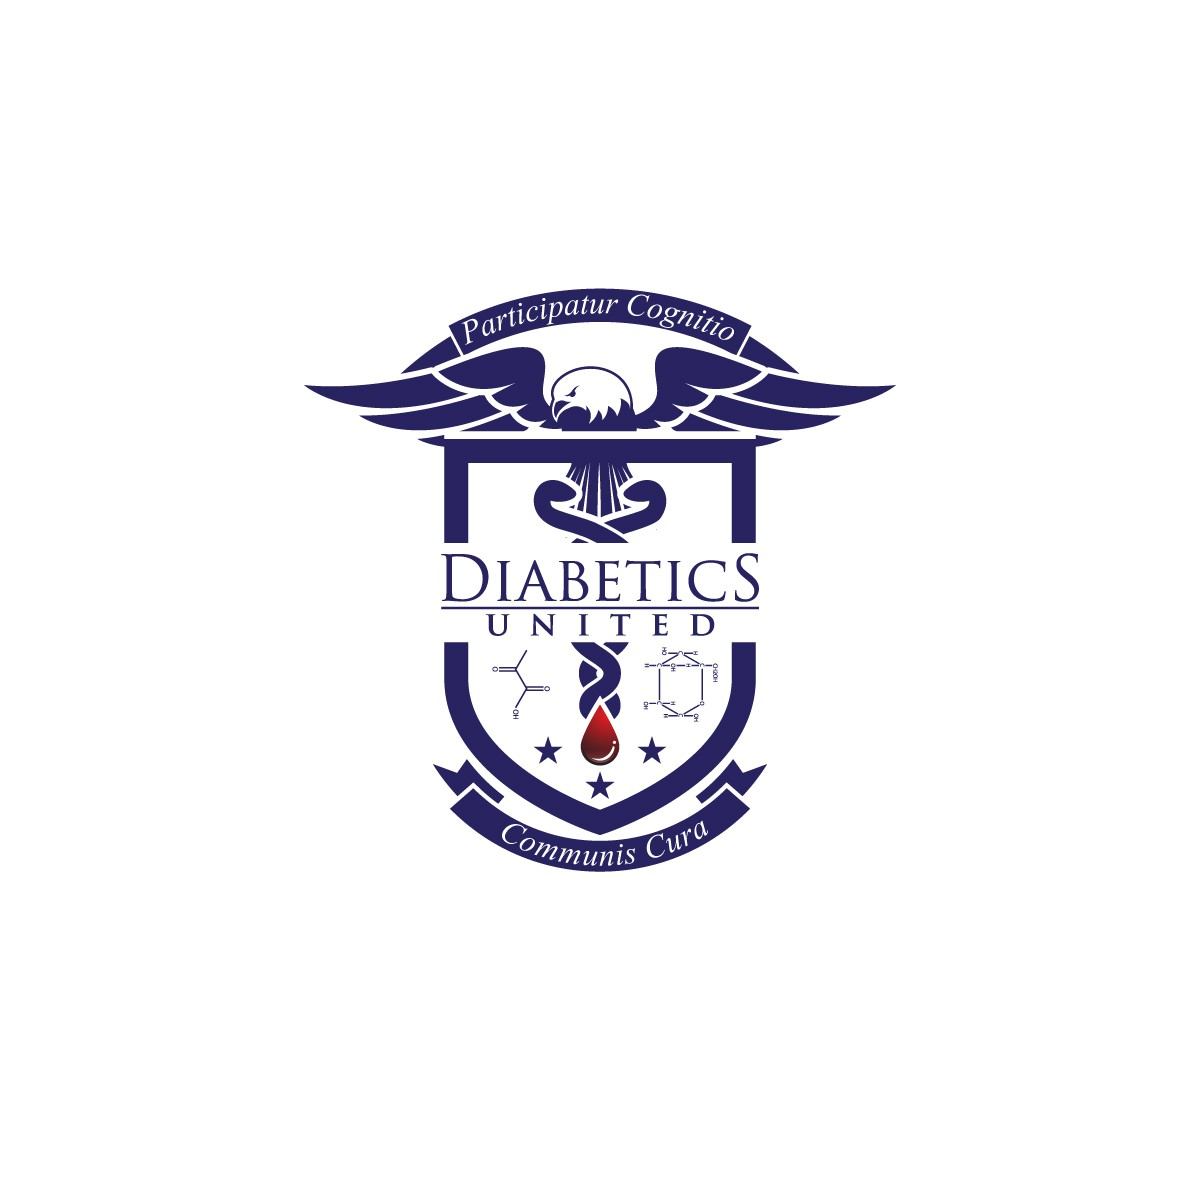 Diabetics United looking for a symbol of unification